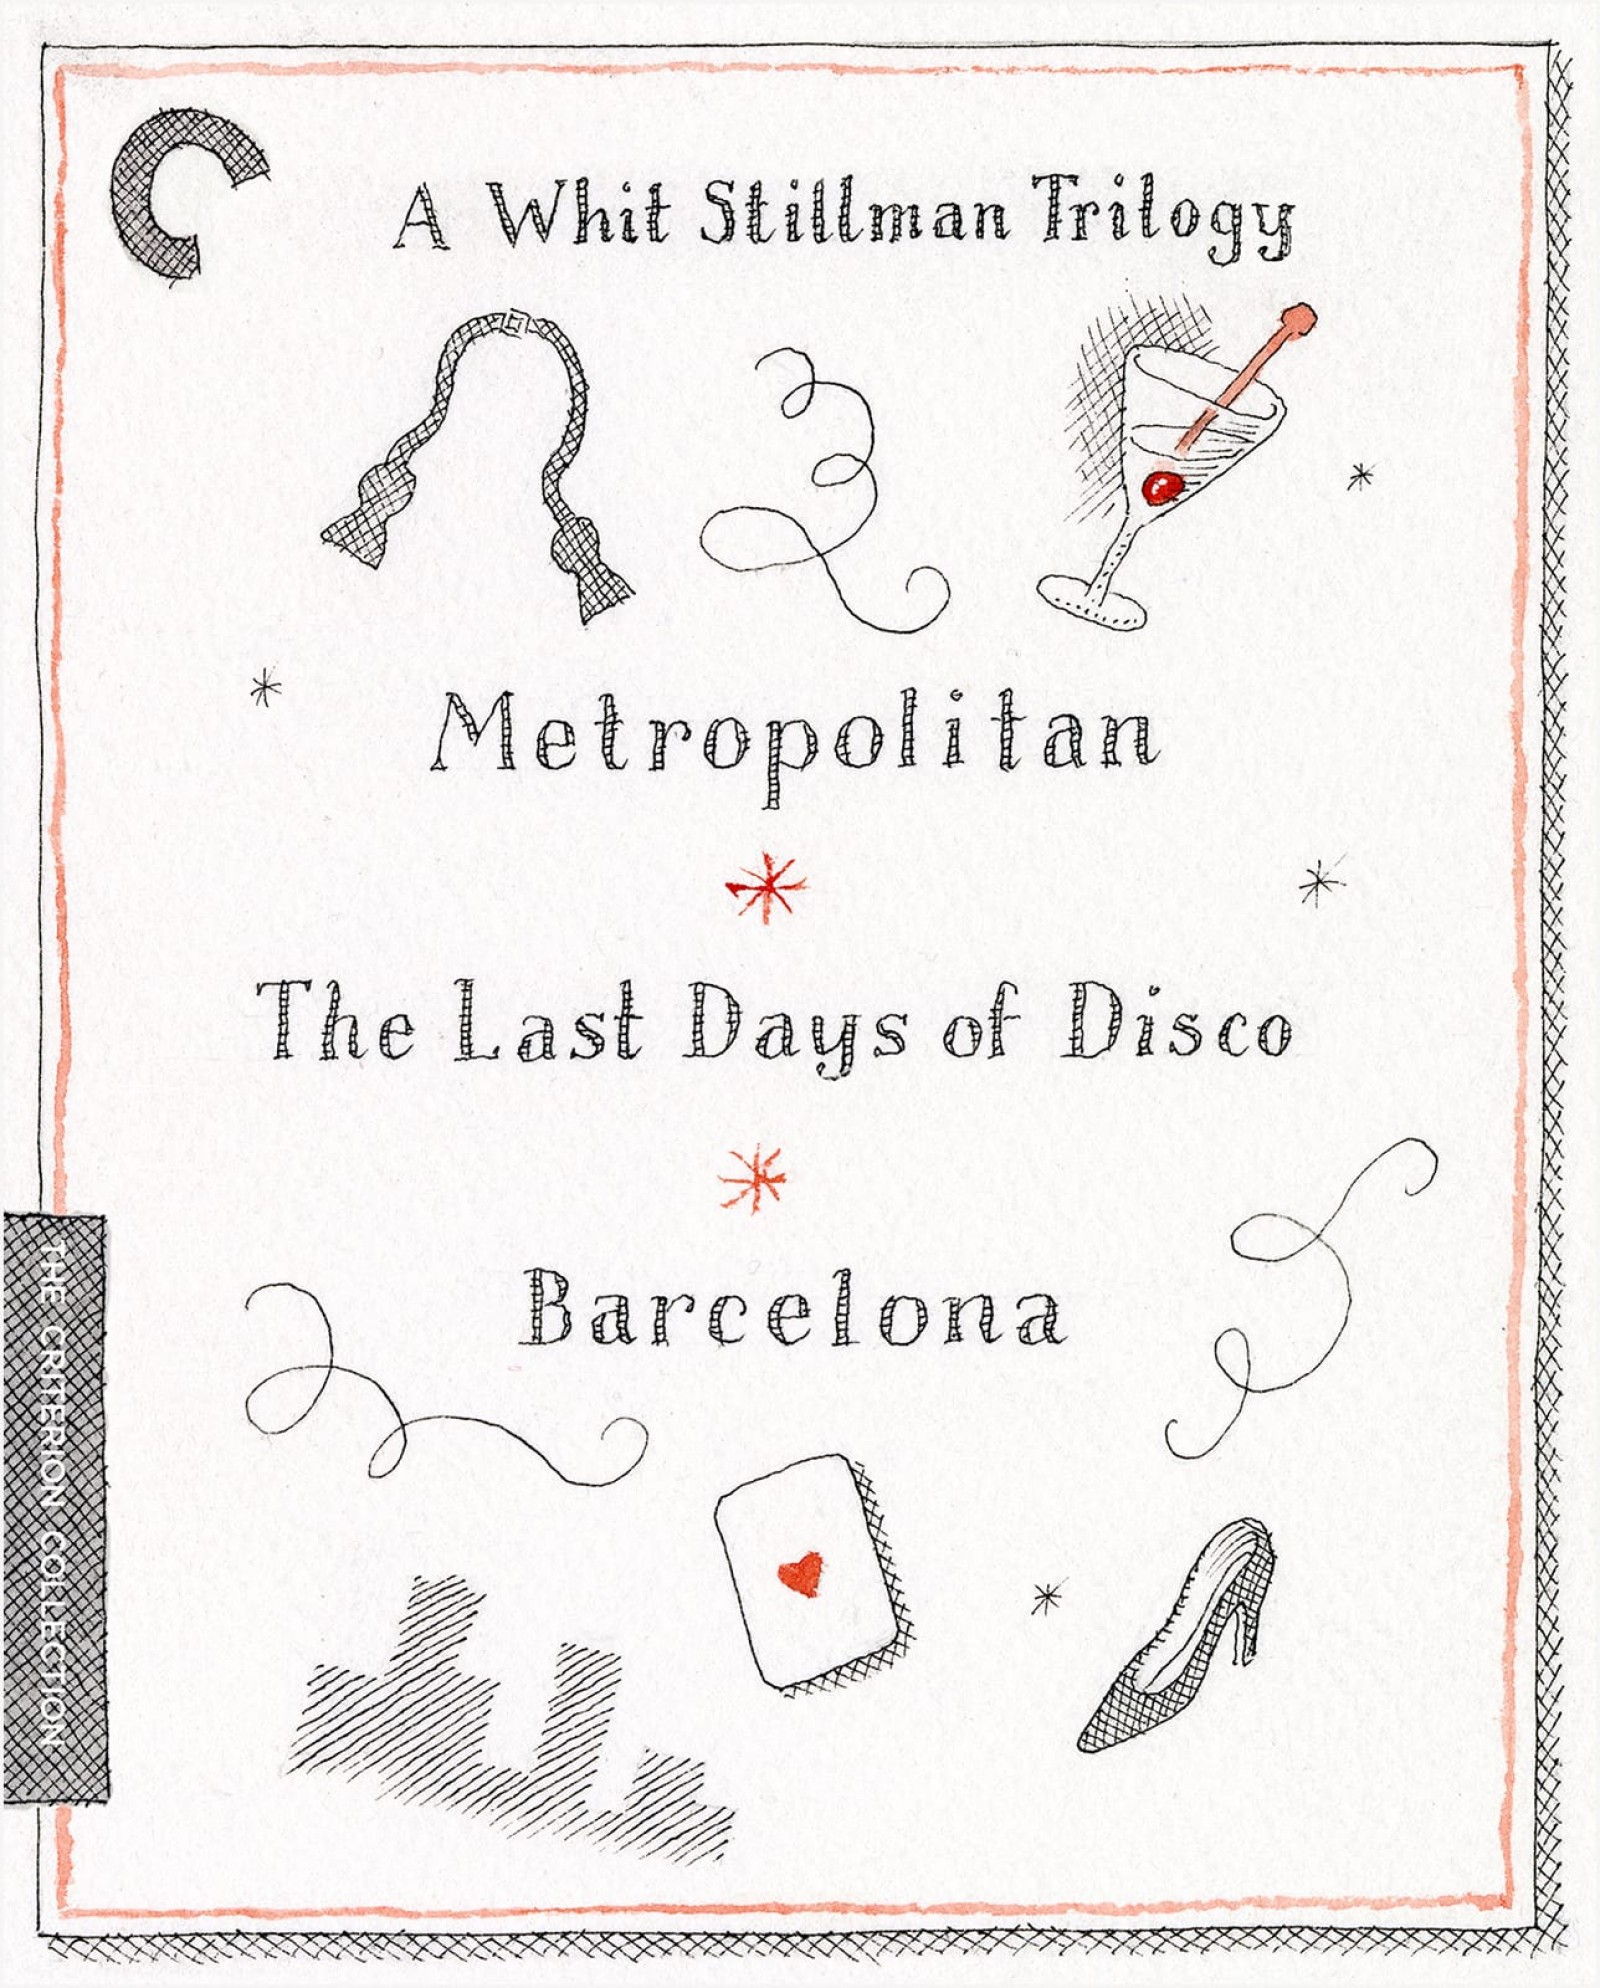 A Whit Stillman Trilogy: Metropolitan, Barcelona, The Last Days of Disco